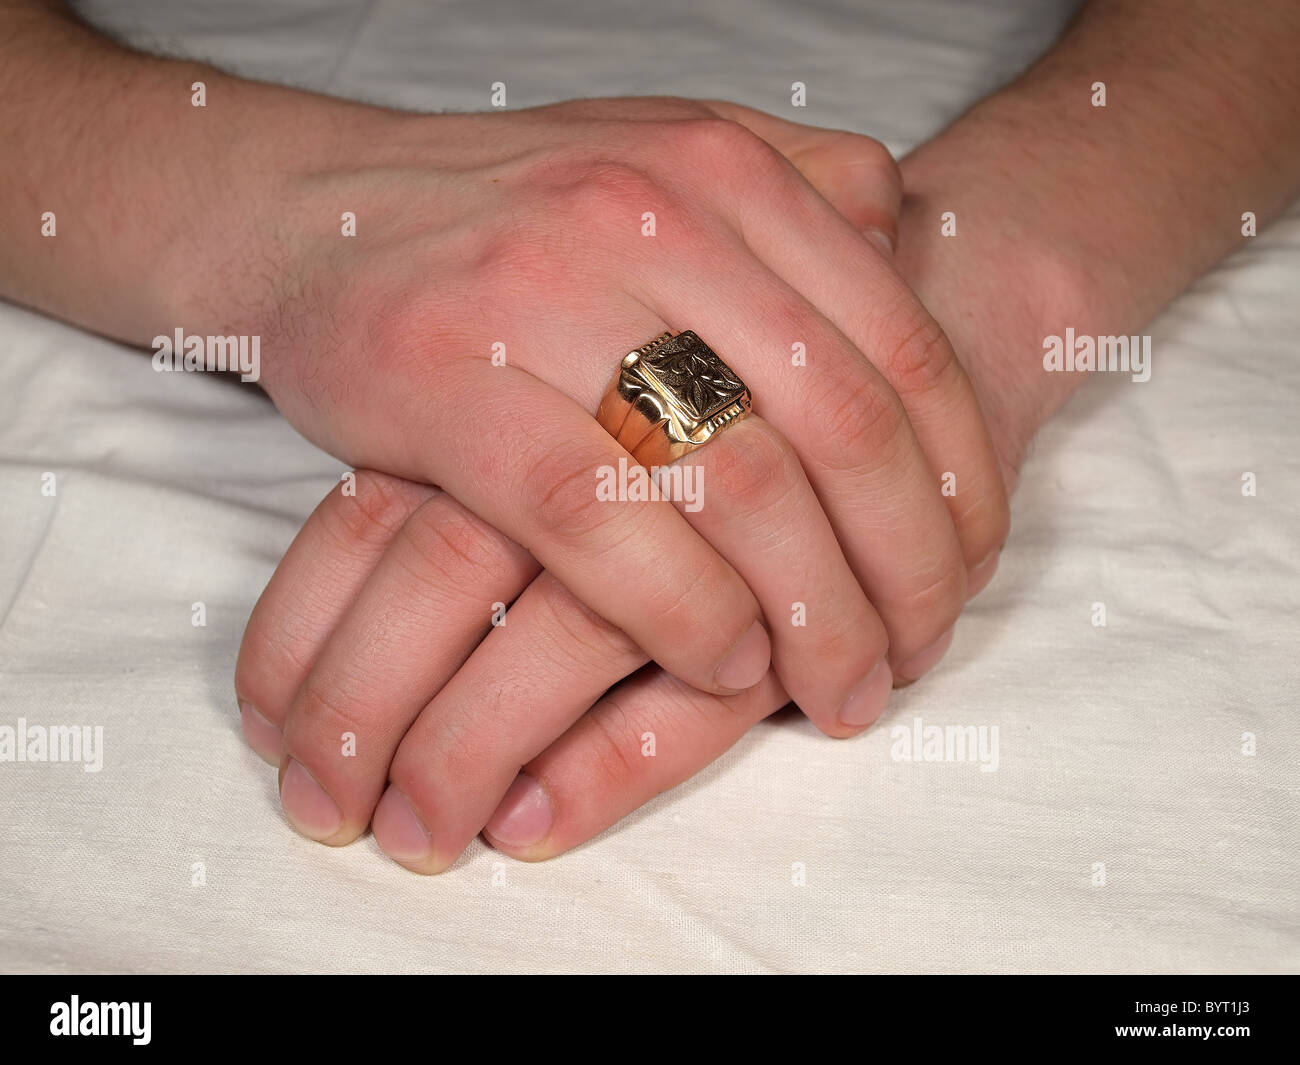 A Man\'s Ring Finger Stock Photos & A Man\'s Ring Finger Stock Images ...